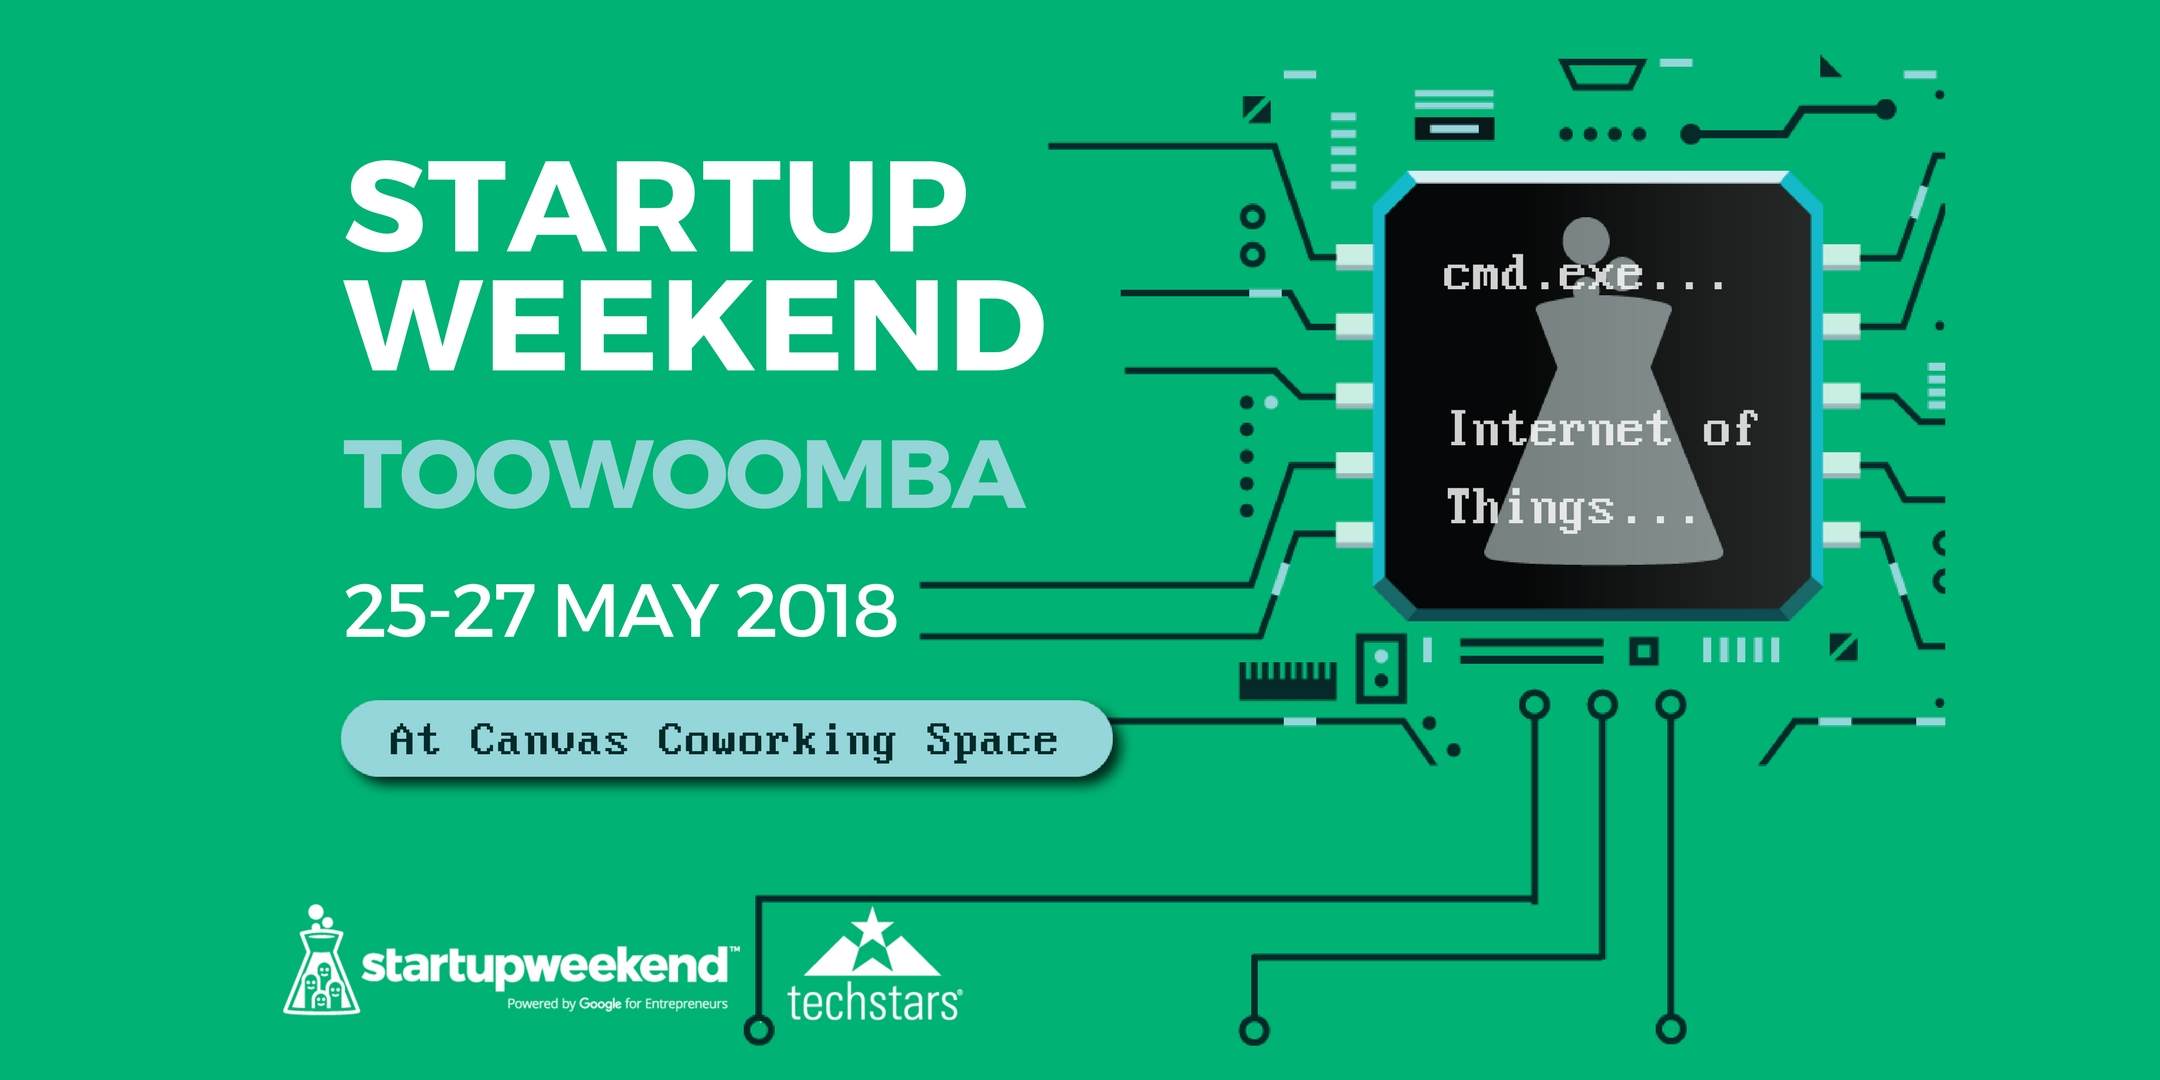 Techstars Startup Weekend - Internet of Things - Toowoomba - 25-27 May 2018